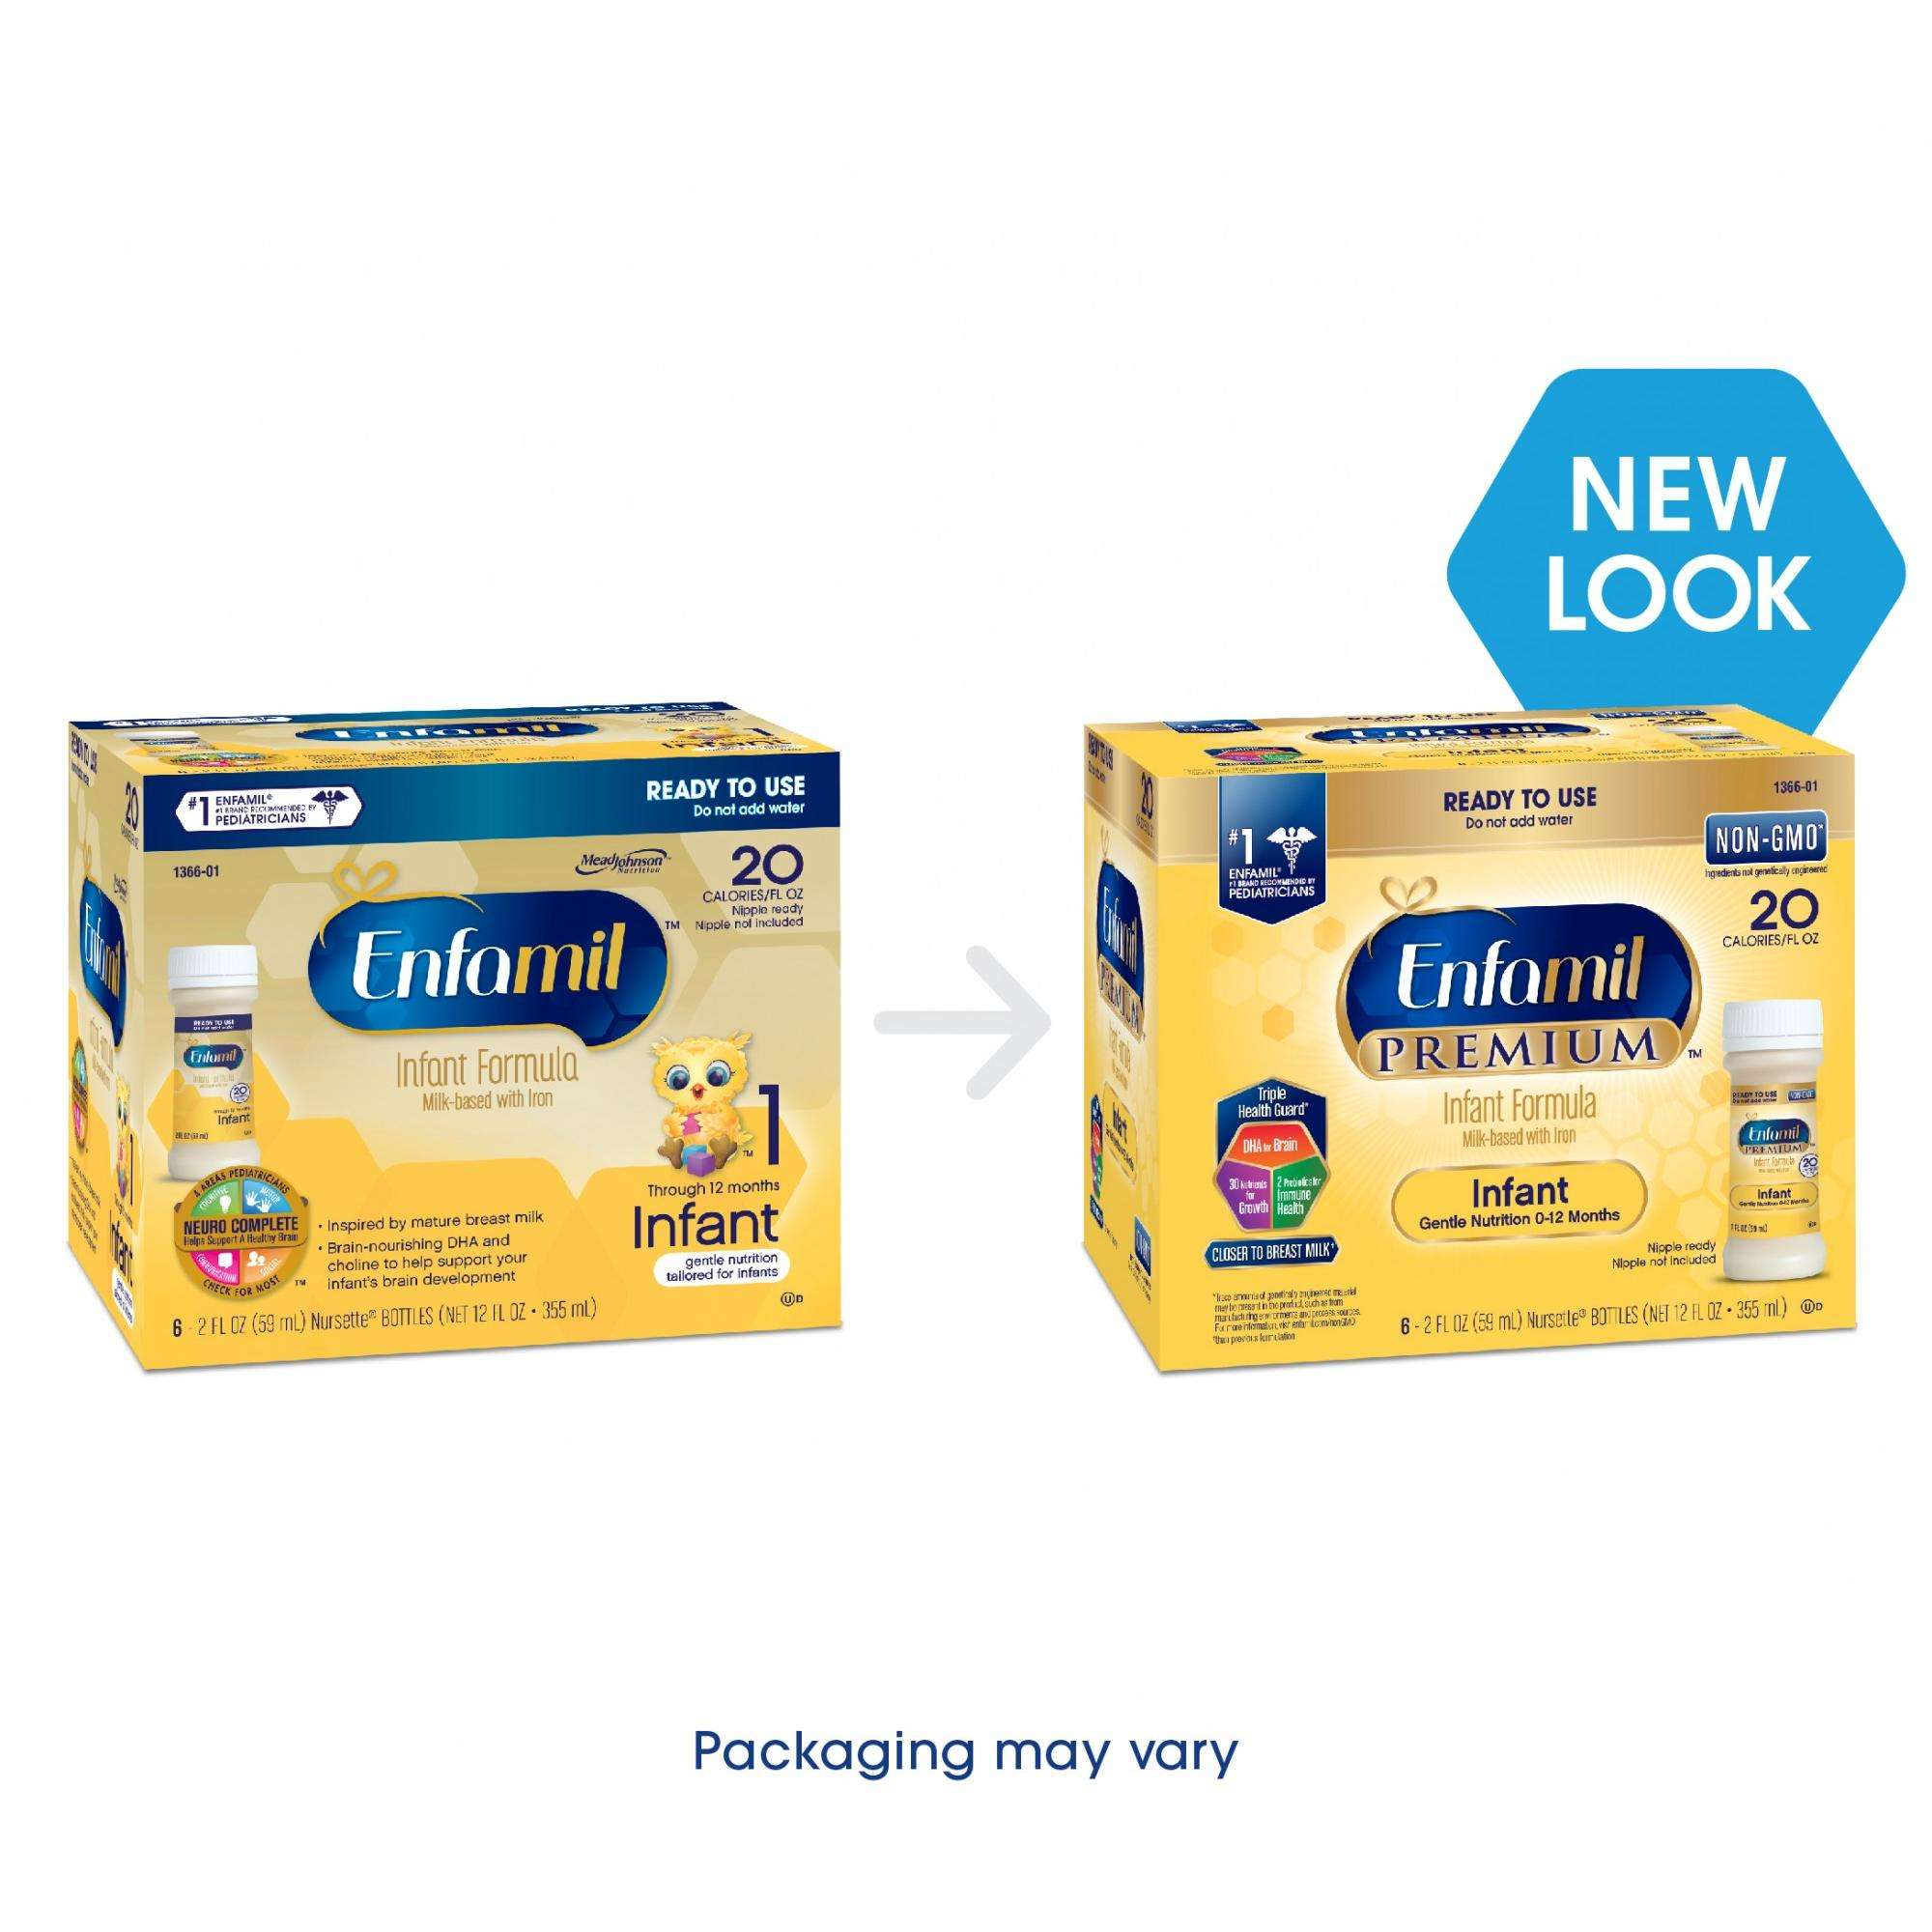 Enfamil PREMIUM Infant Formula, Ready to Use 2 Fluid Ounce Bottles, 6 Pack